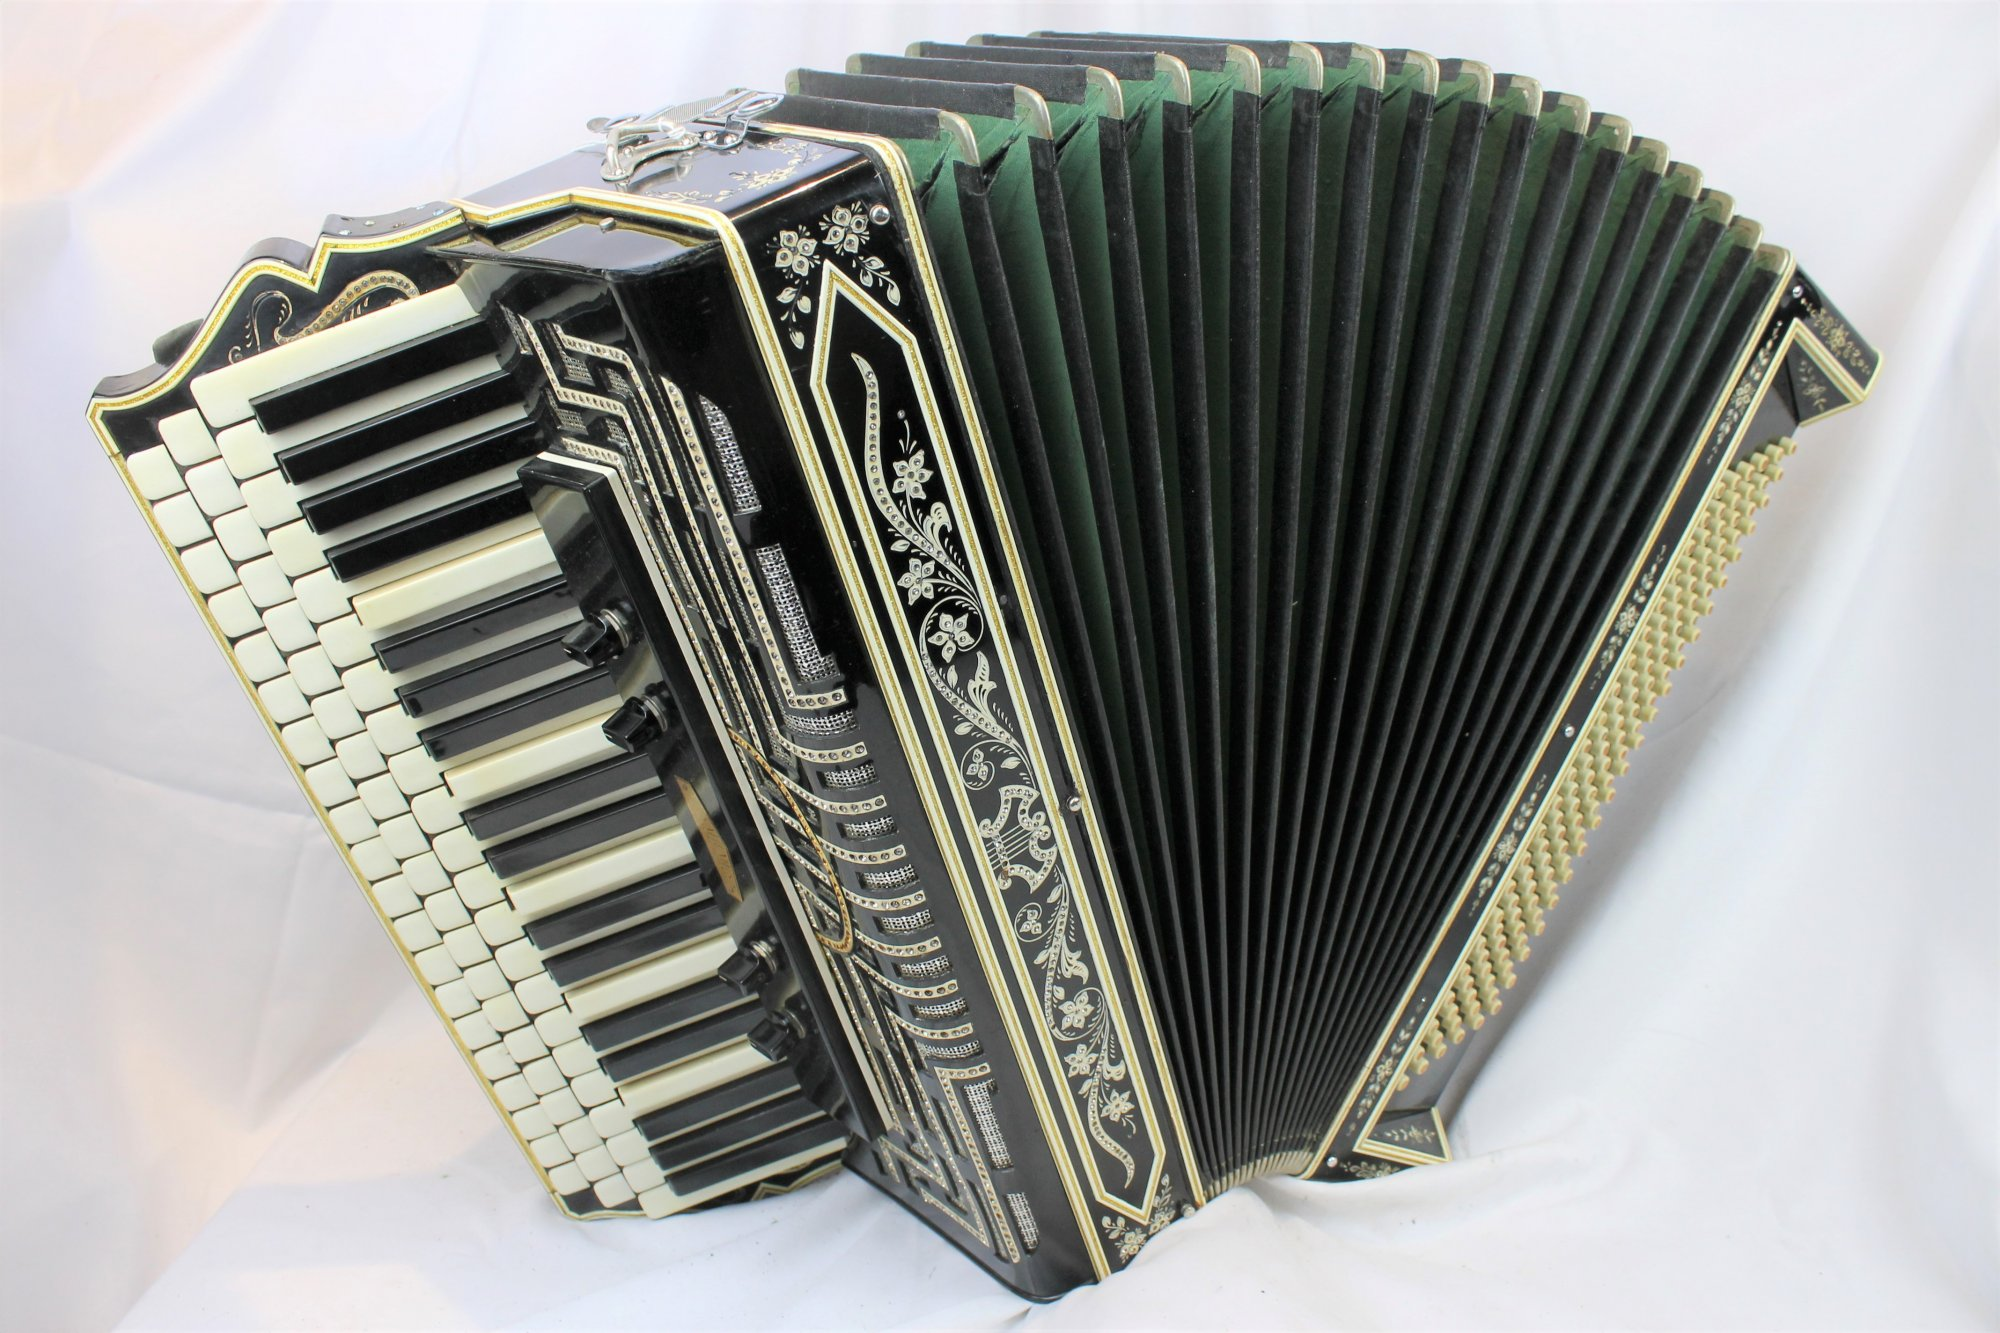 4048 - Black Kahlmen Chromatic Button Accordion B System LMM 84 120